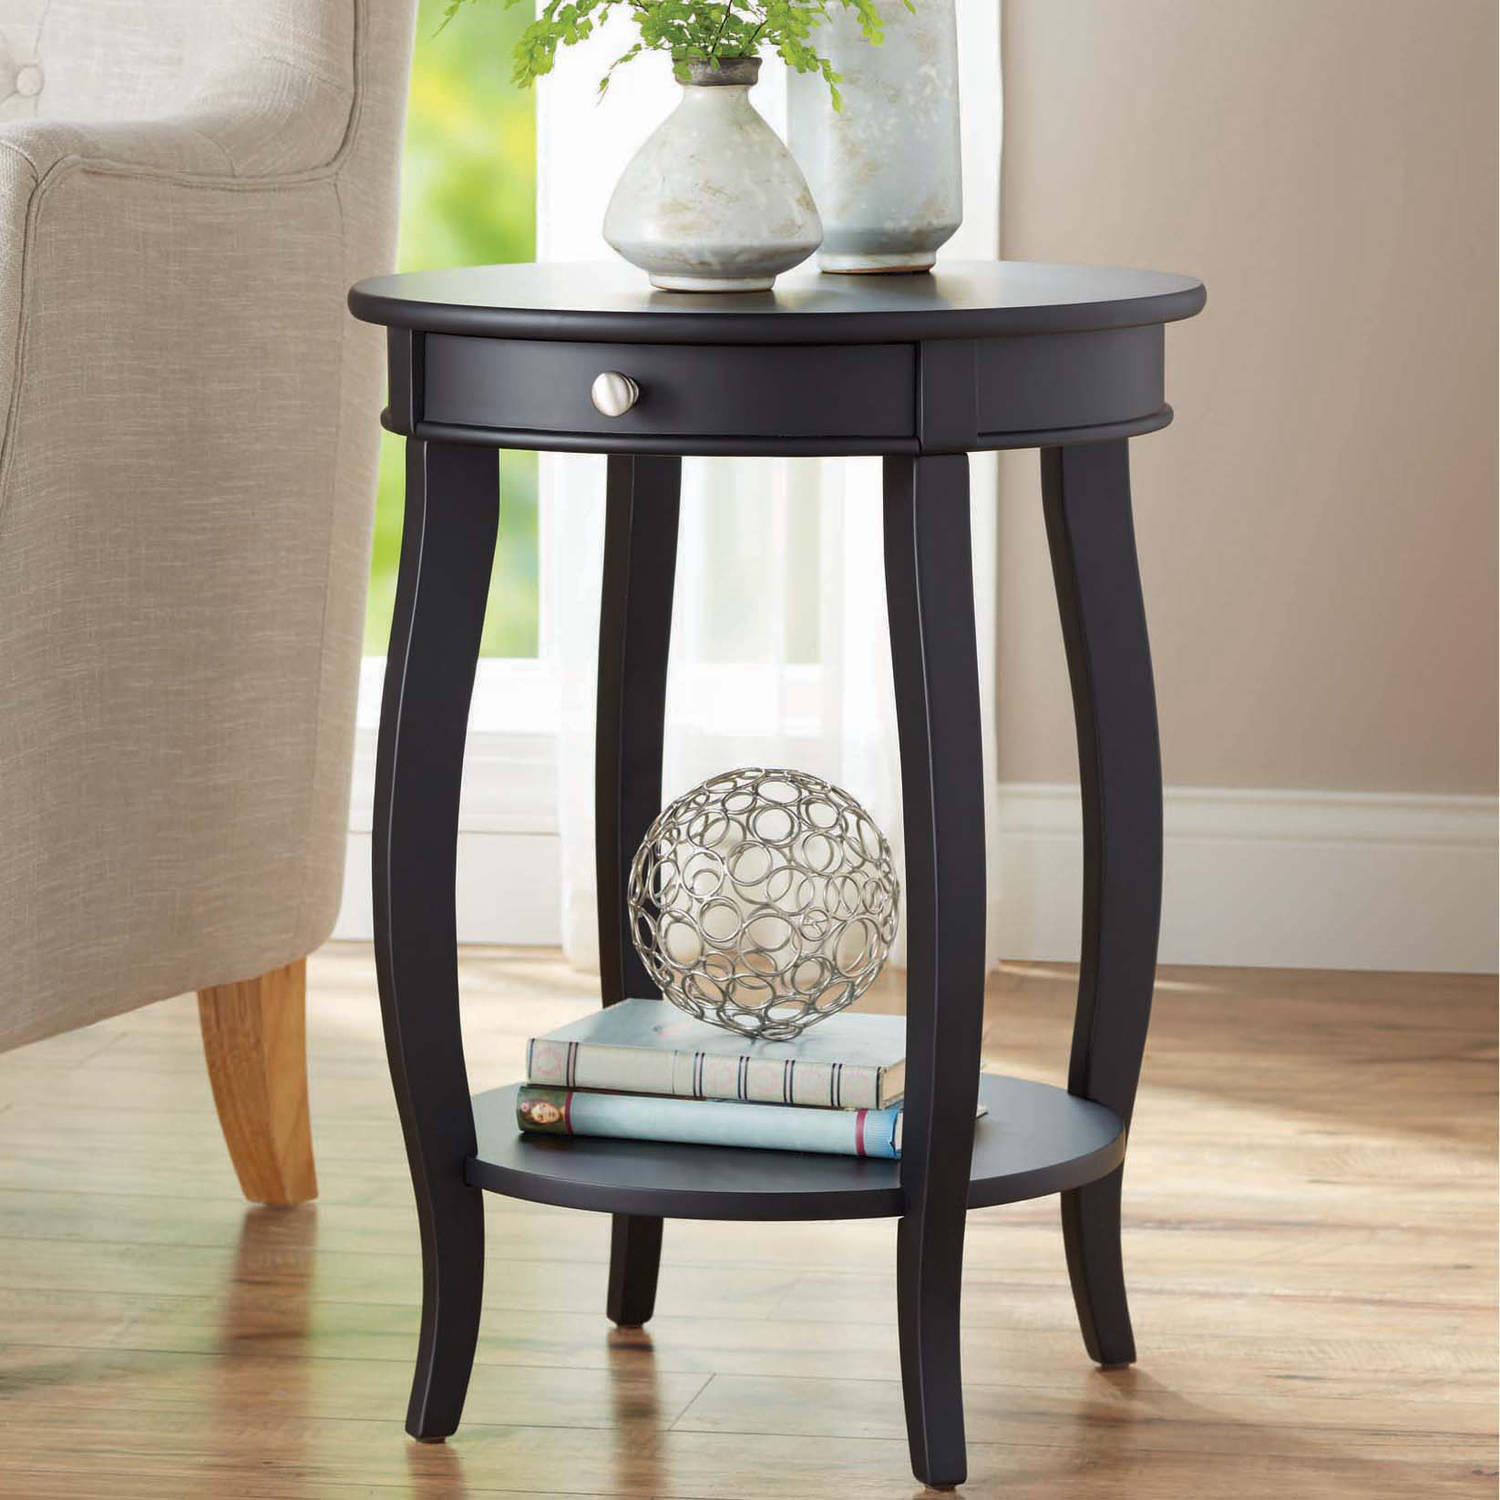 better homes gardens round accent table with drawer multiple home decor end tables colors black bear timber side tire dog ethan allen room planner ashley furniture kids french